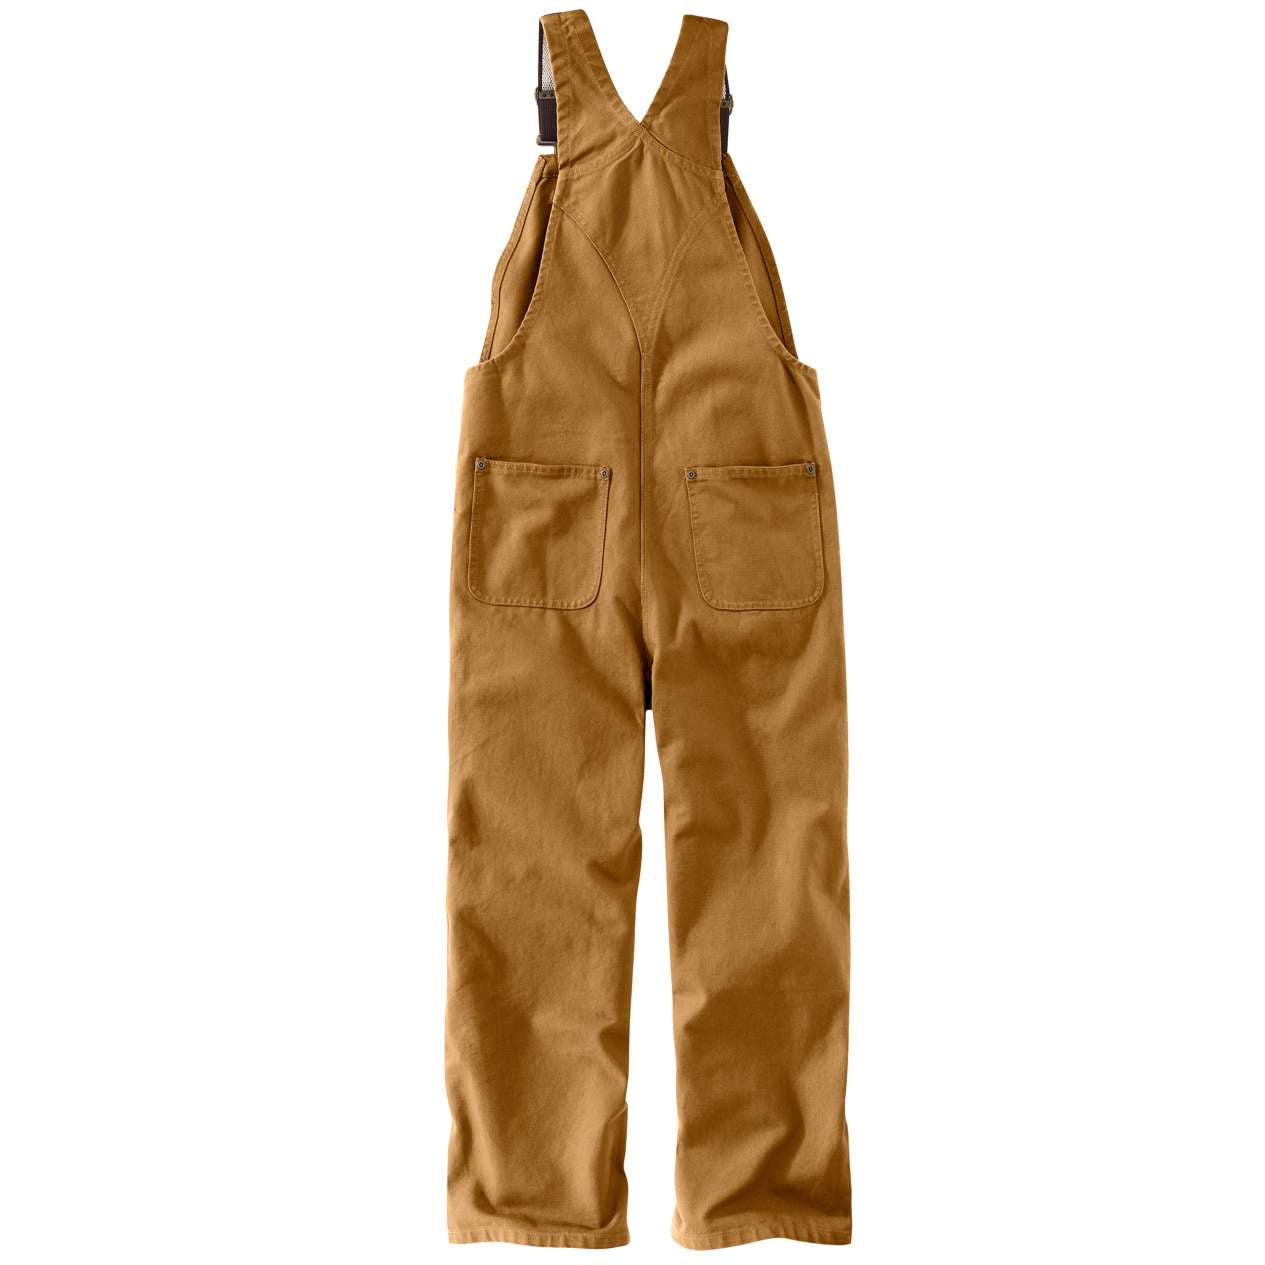 Carhartt Boys' Bib Overalls Washed Duck Canvas CM8601 – Good's Store Online